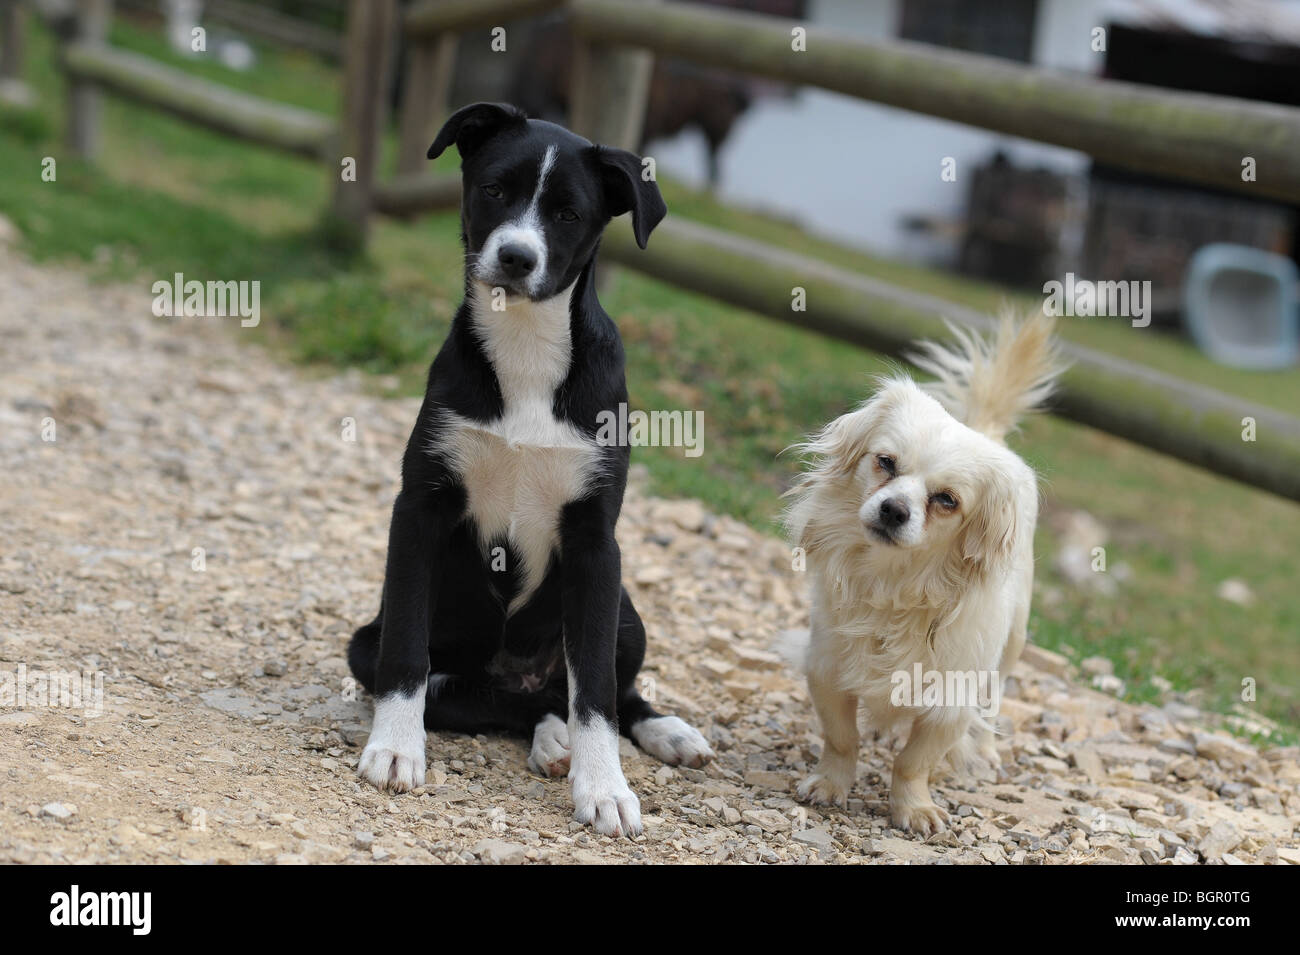 Two inquisitive countryside mongrels, one small white and furry, one large smooth haired. Colombia, South America - Stock Image